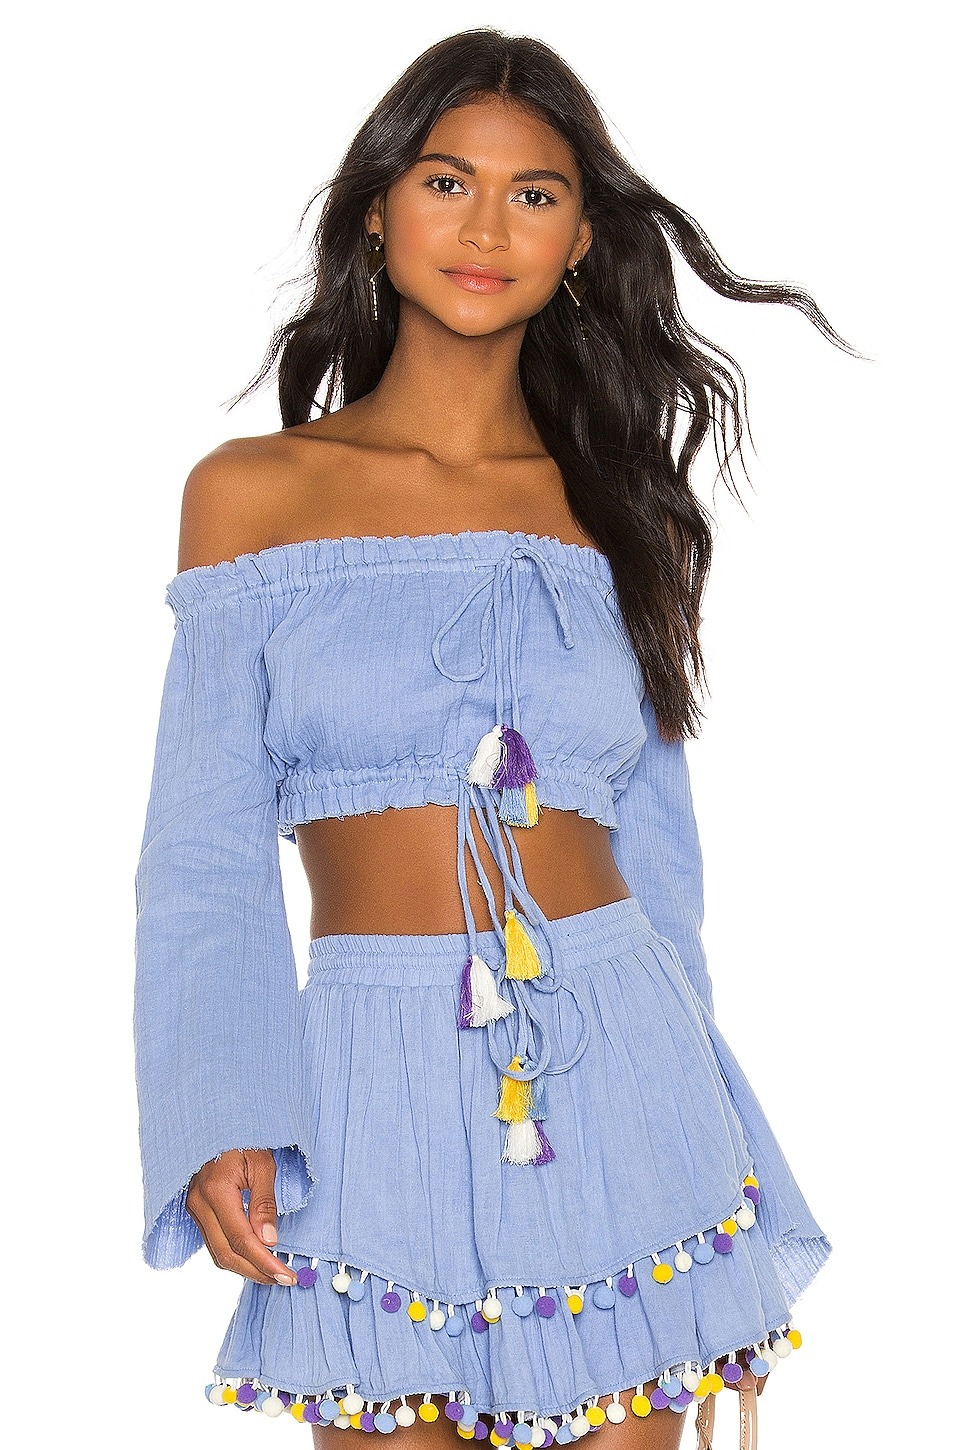 MAJORELLE Calypso Top in Powder Blue